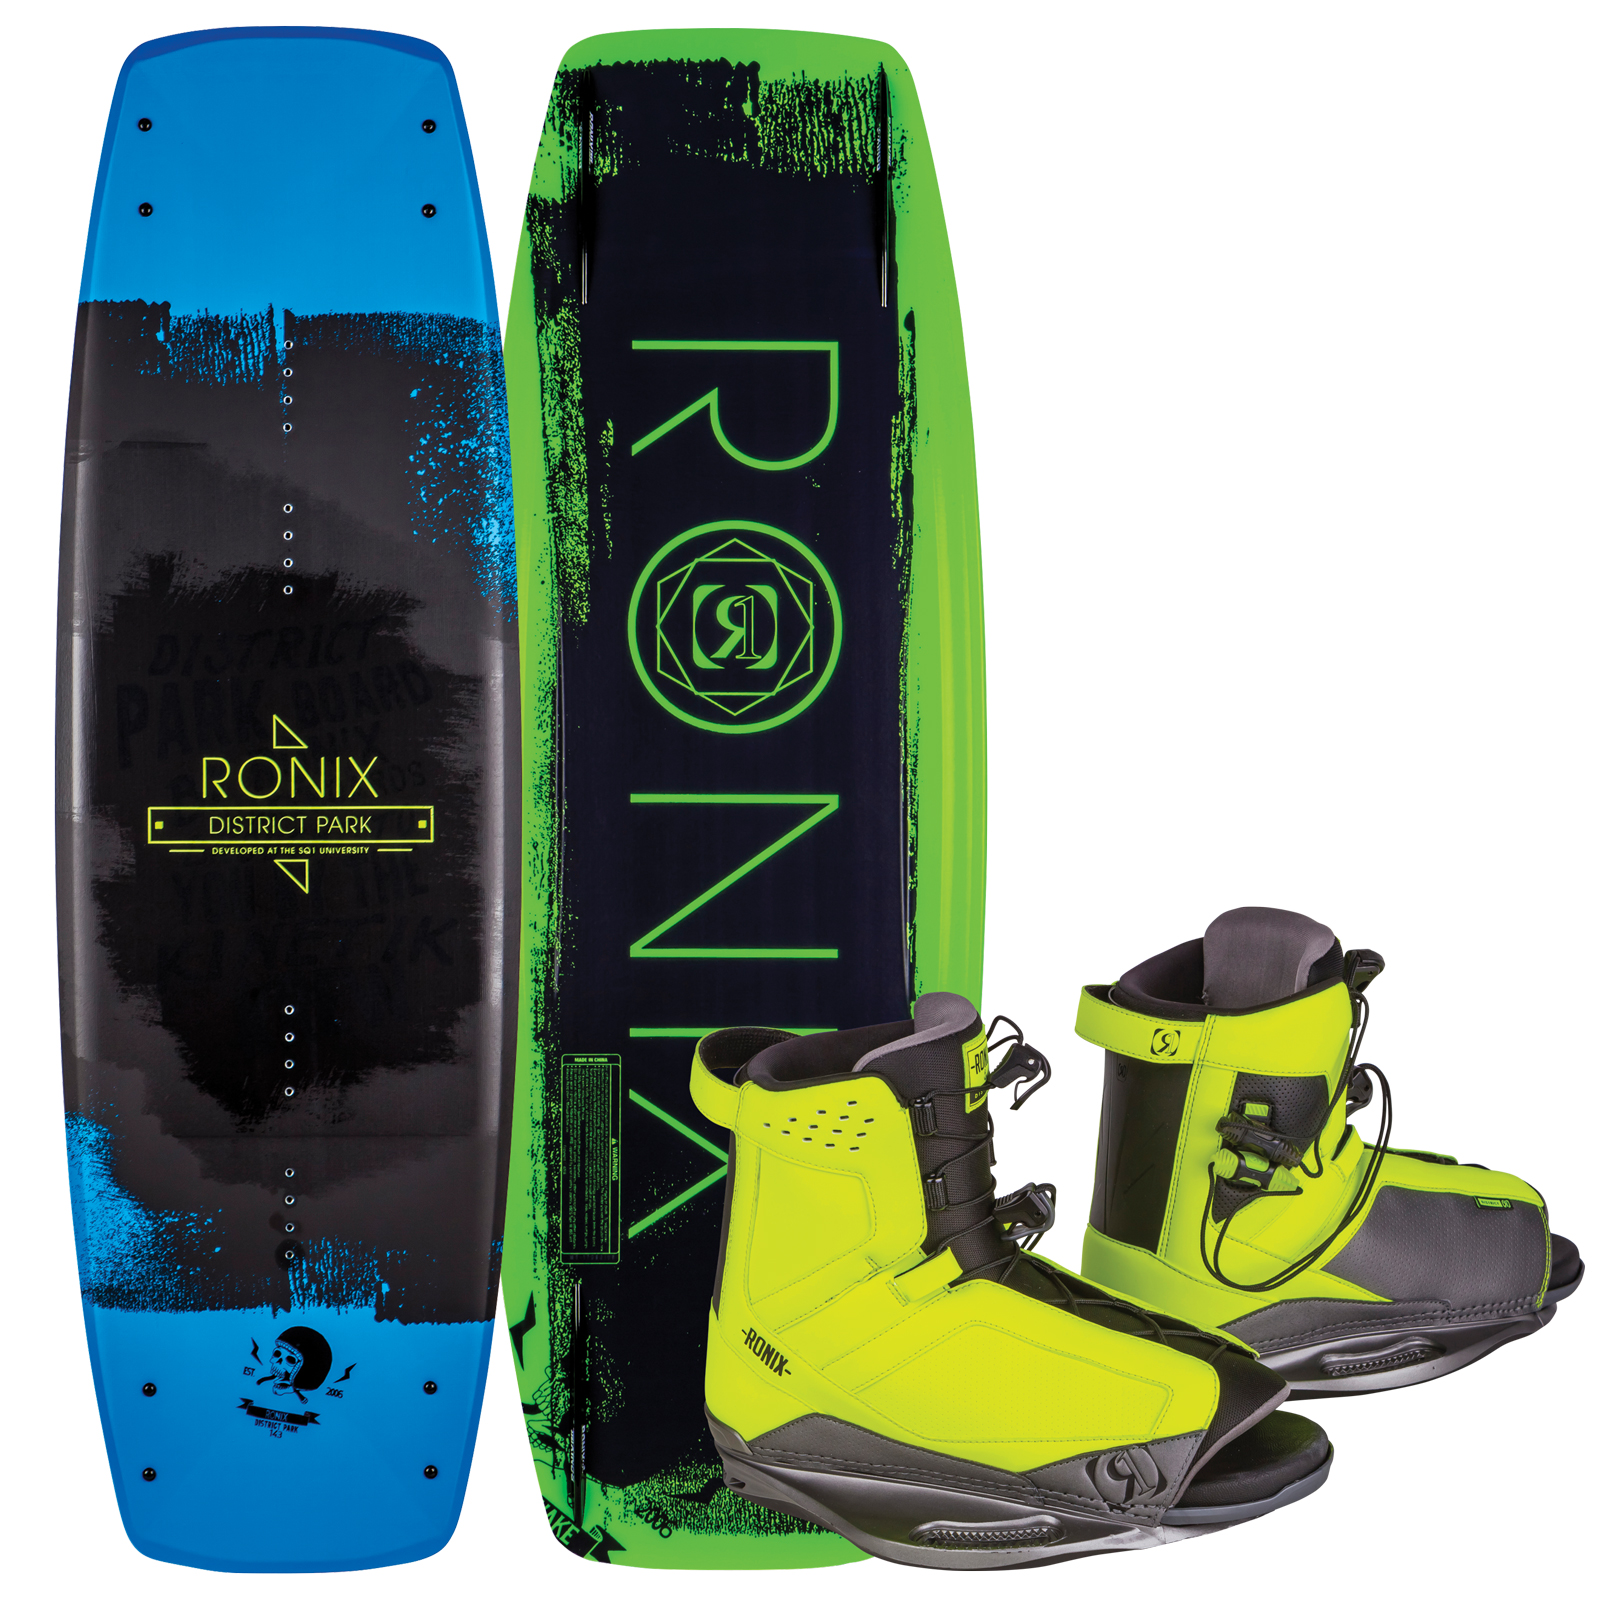 DISTRICT PARK 138 W/ DISTRICT PACKAGE RONIX 2017